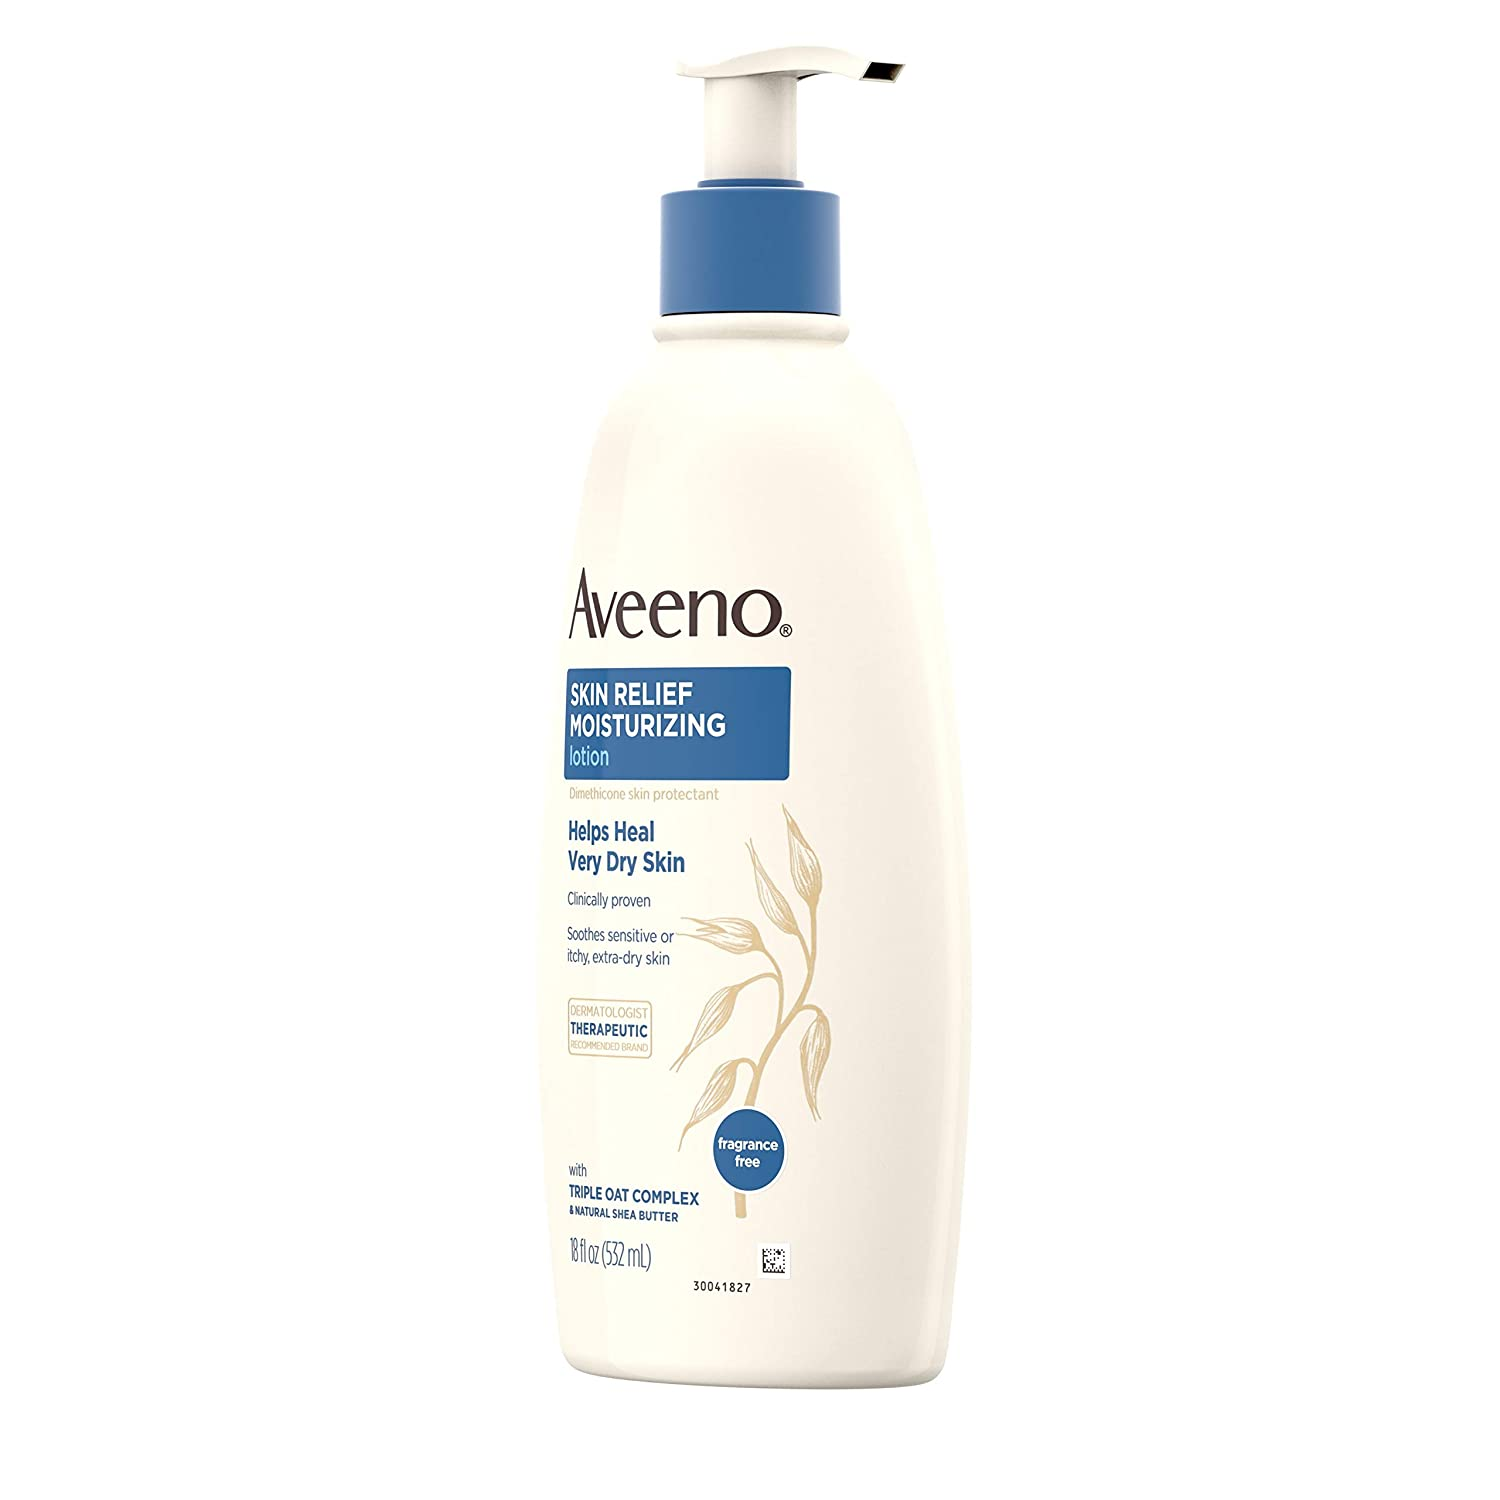 Aveeno Skin Relief Fragrance-Free Moisturizing Lotion for Sensitive Skin, with Natural Shea Butter & Triple Oat Complex, Unscented Therapeutic Body Lotion for Itchy, Extra-Dry Skin, 18 fl. oz: Beauty